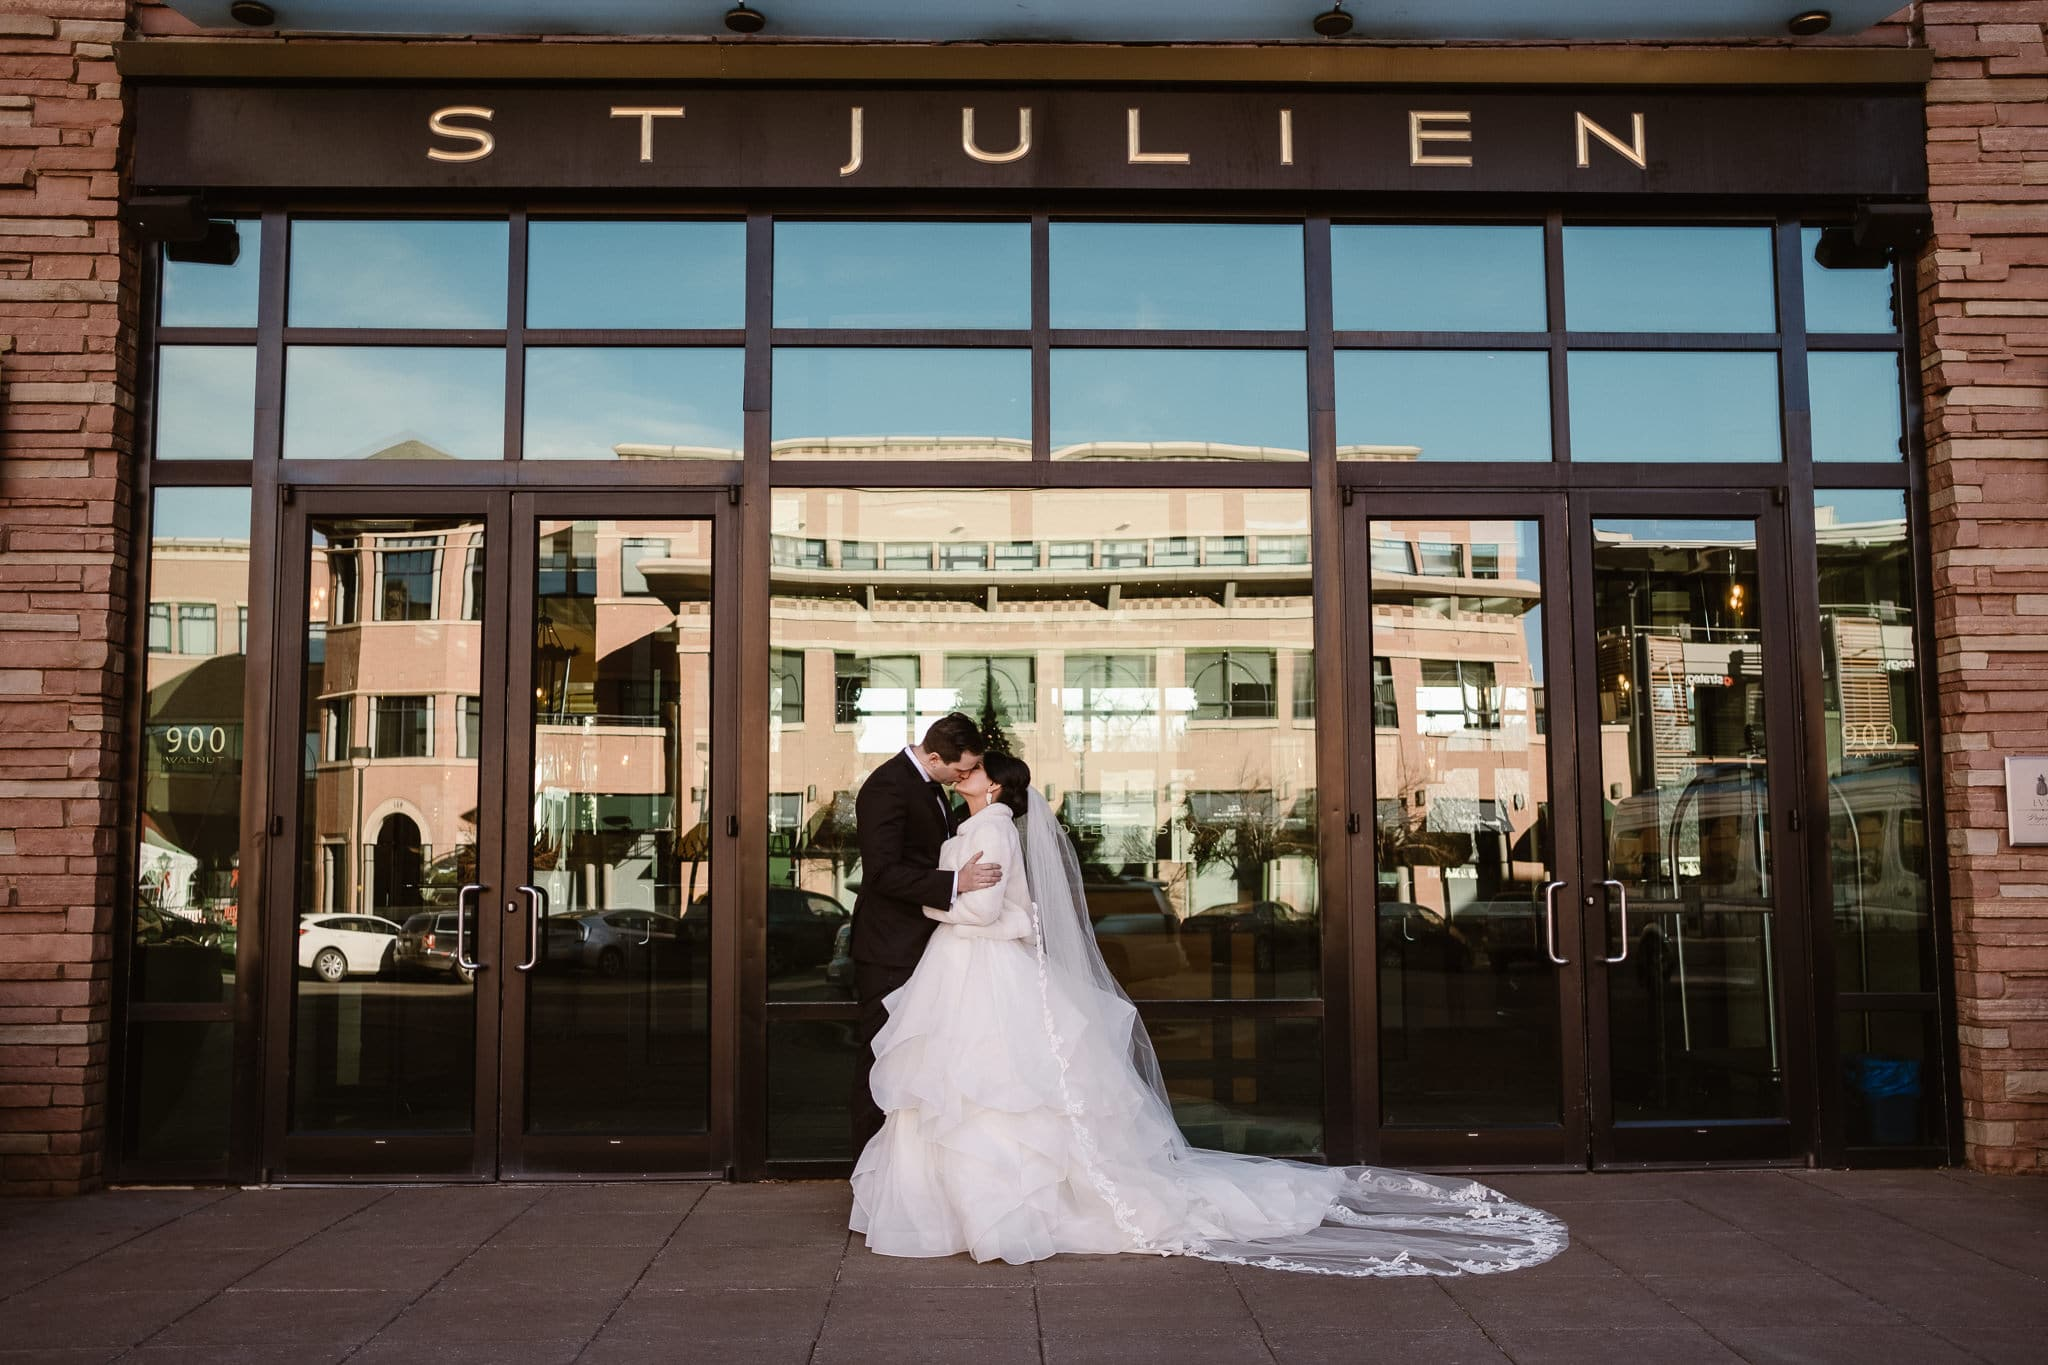 Bride and groom portraits in front of The St Julien Hotel & Spa , Boulder wedding photographer, Colorado wedding photographer, St Julien wedding photographer, downtown Boulder wedding photos